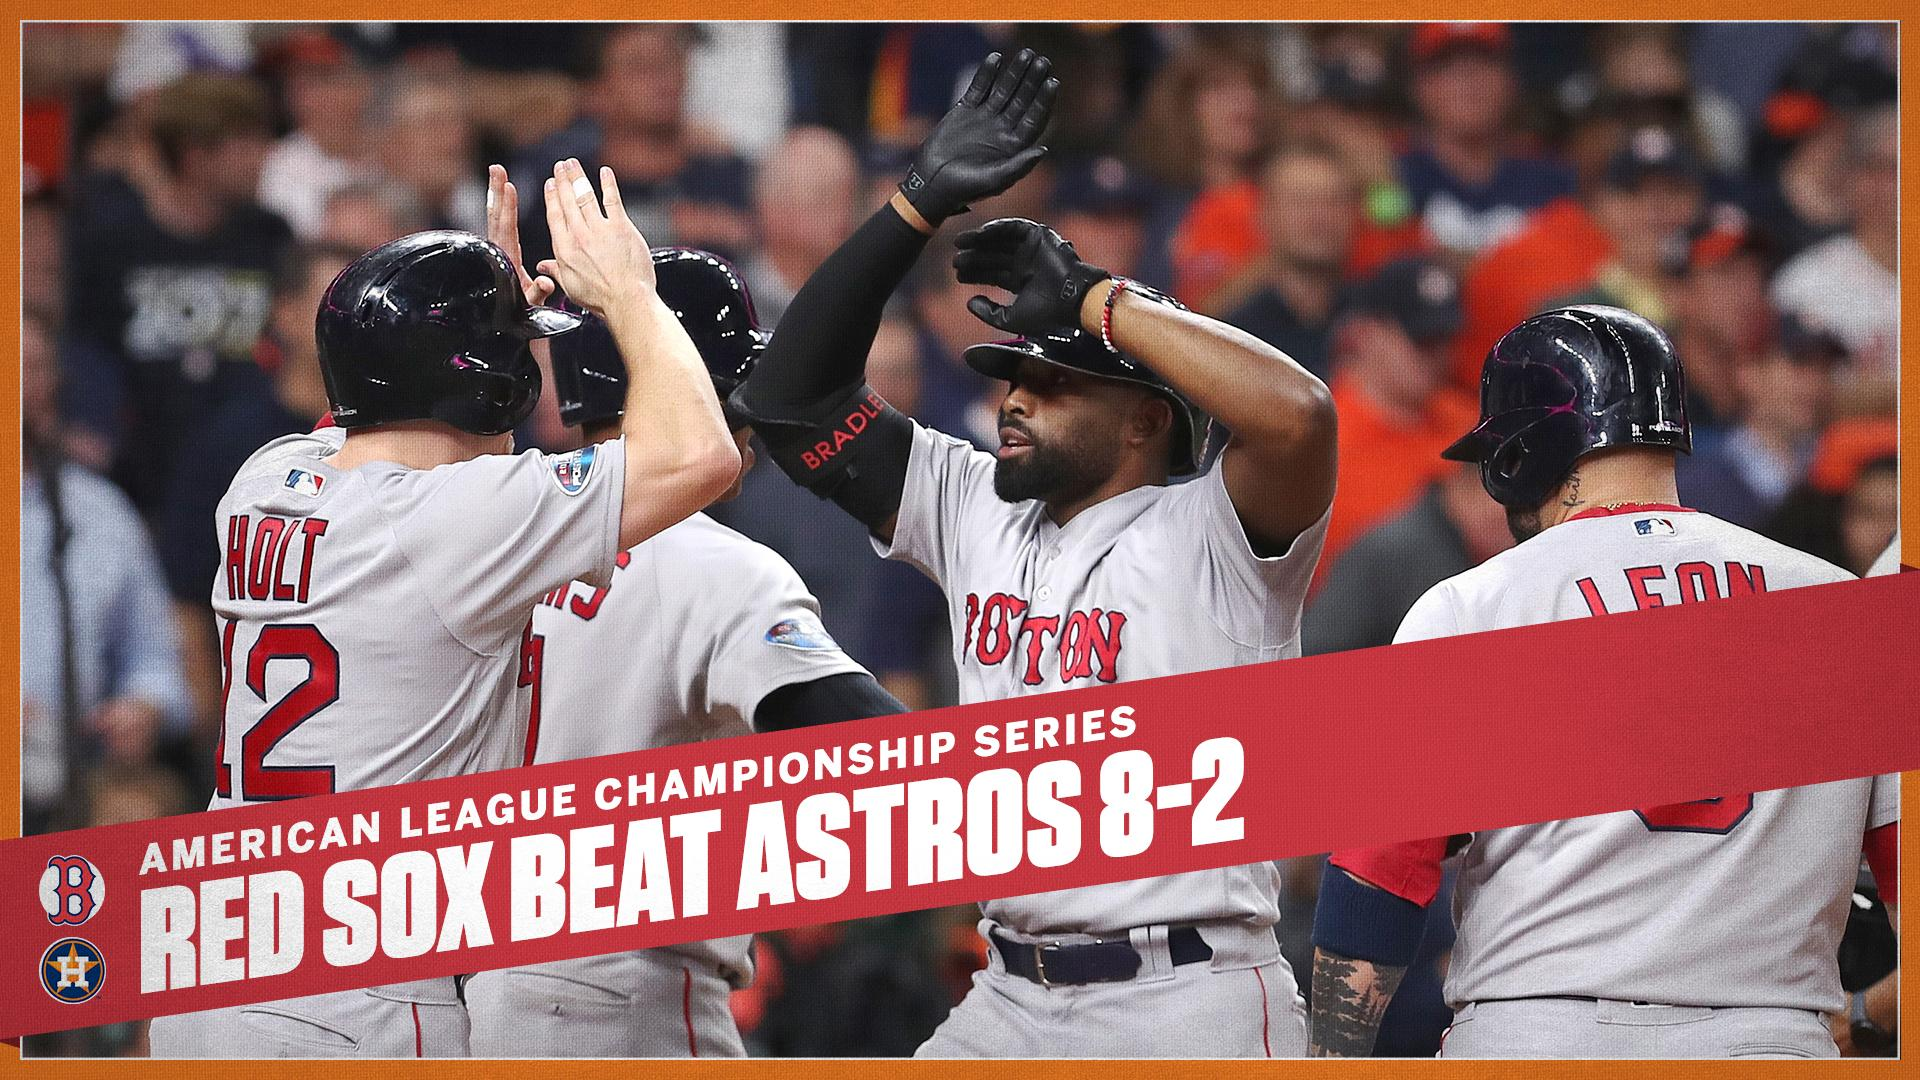 Magic from JBJ!  Jackie Bradley Jr.'s grand slam helped give the Red Sox a 2-1 series lead in the ALCS. https://t.co/mUGfM69jHn